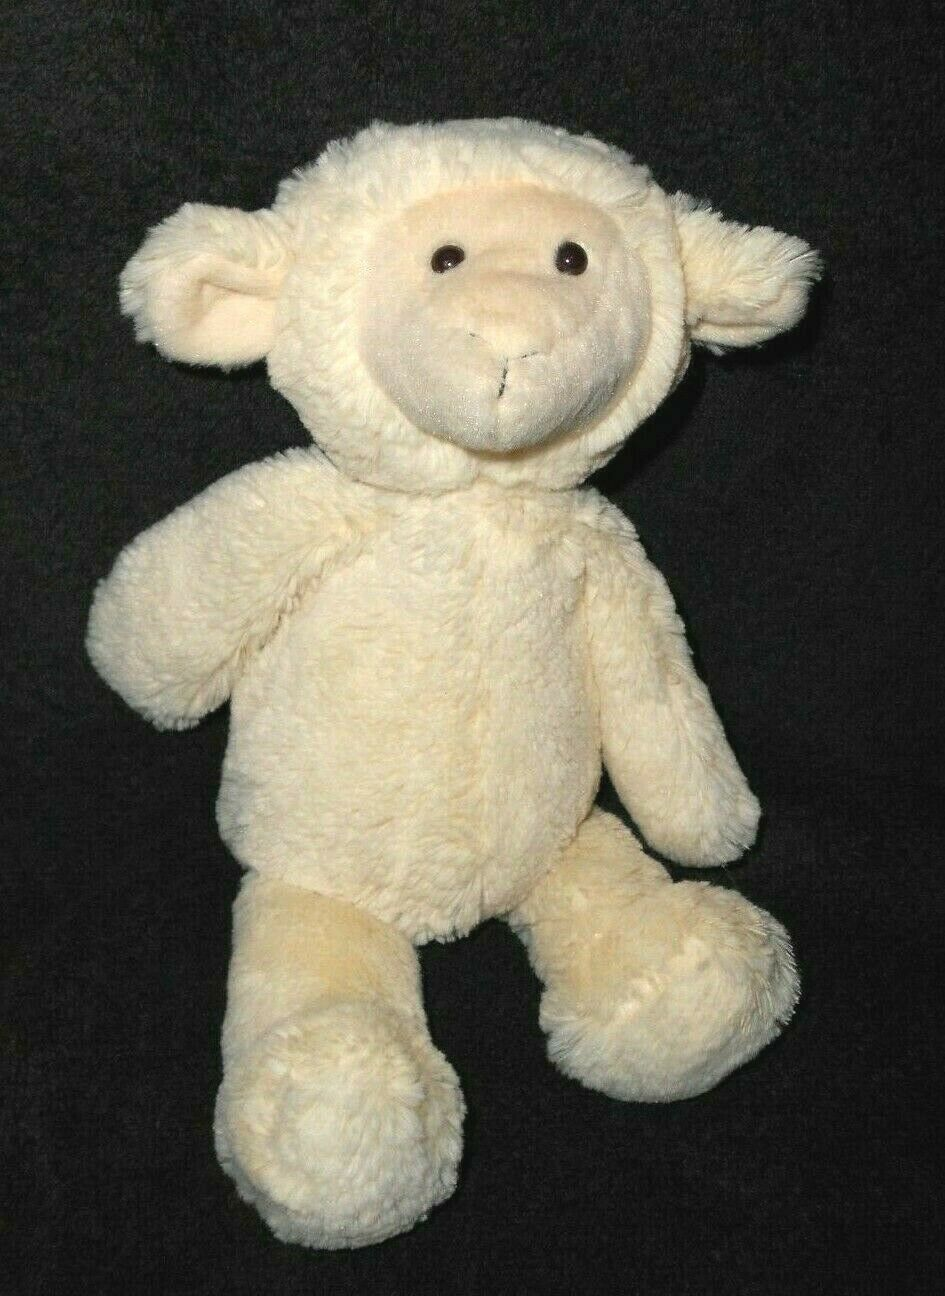 Primary image for Manhattan Toy Lamb Plush Stuffed Animal Ivory Cream Color Floppy 2013